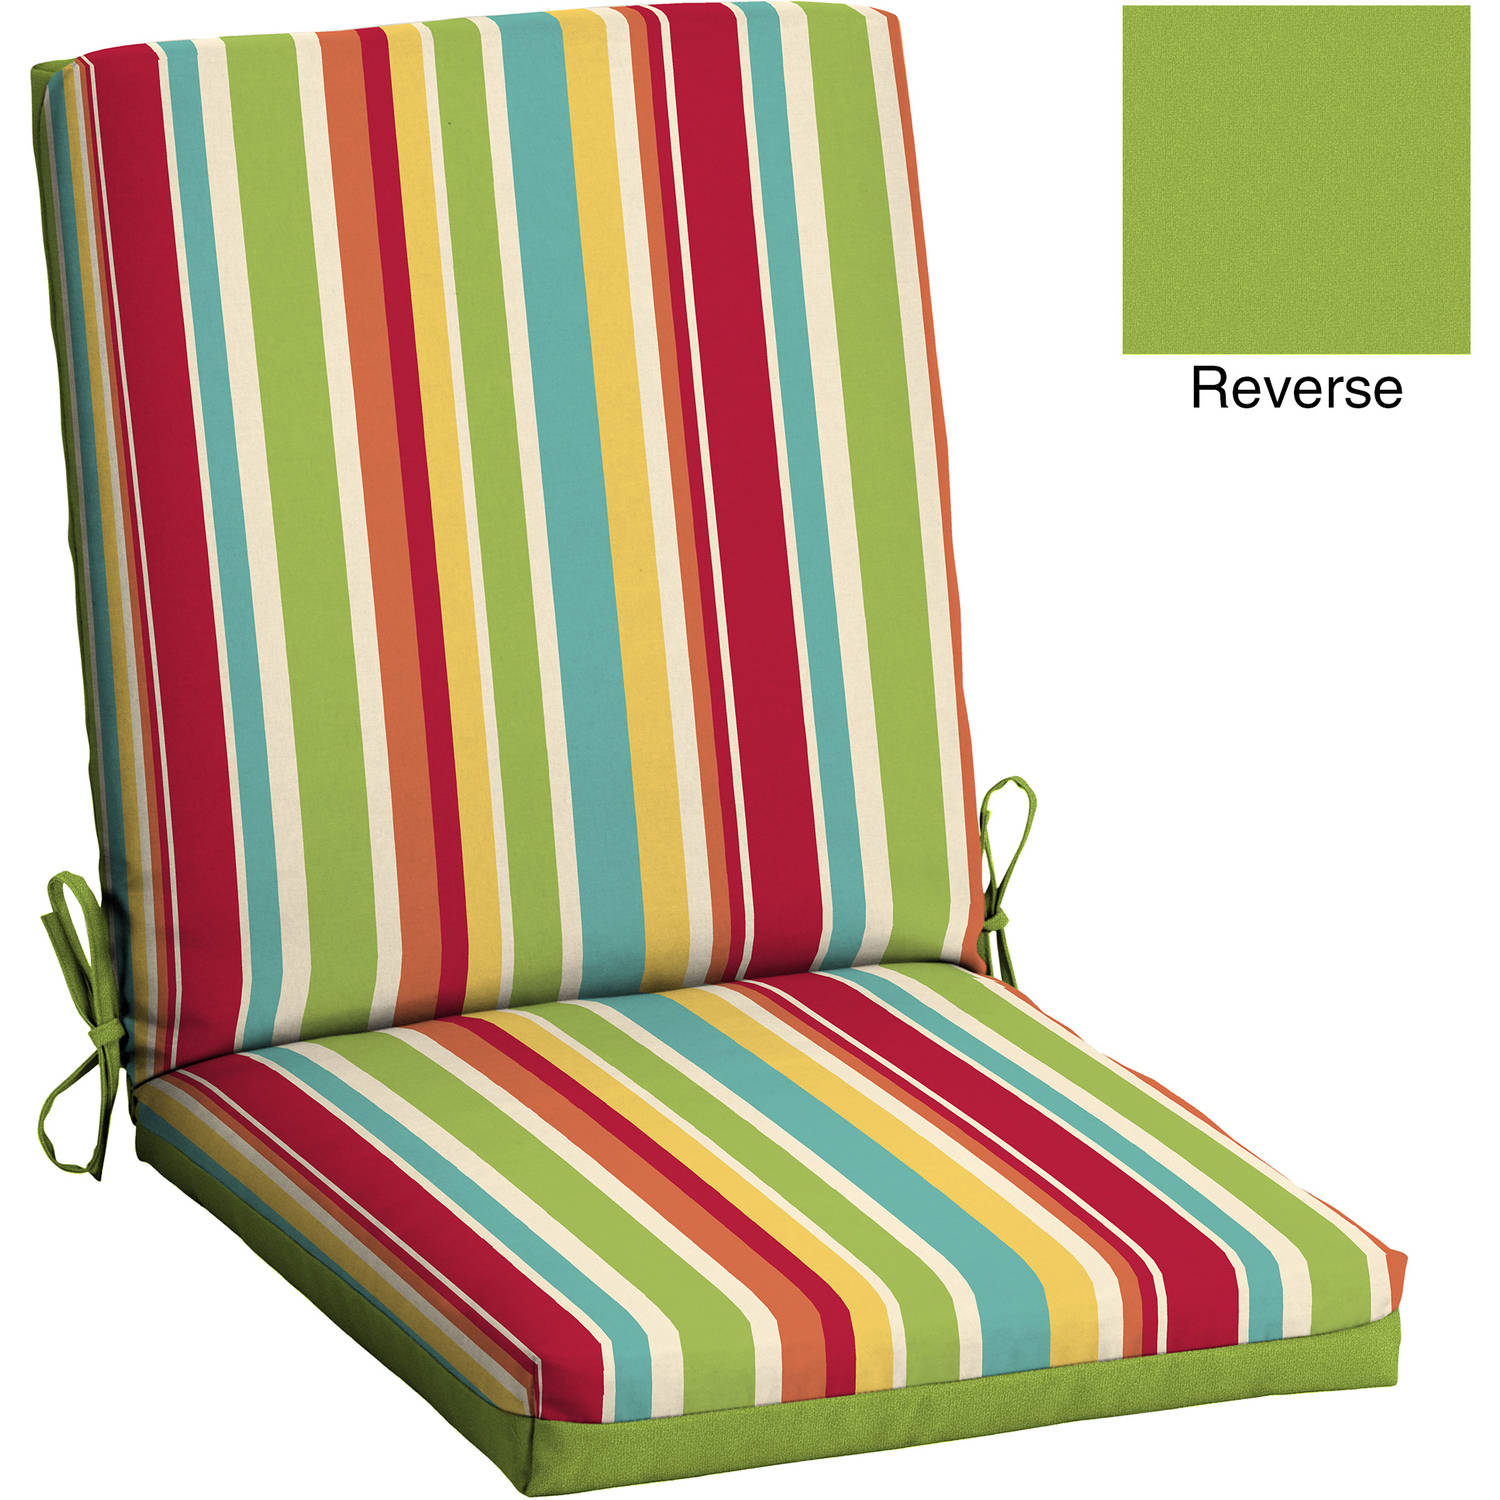 Cushions chair pads and more - Mainstays Outdoor Patio Reversible Dining Chair Cushion Multi Stripe